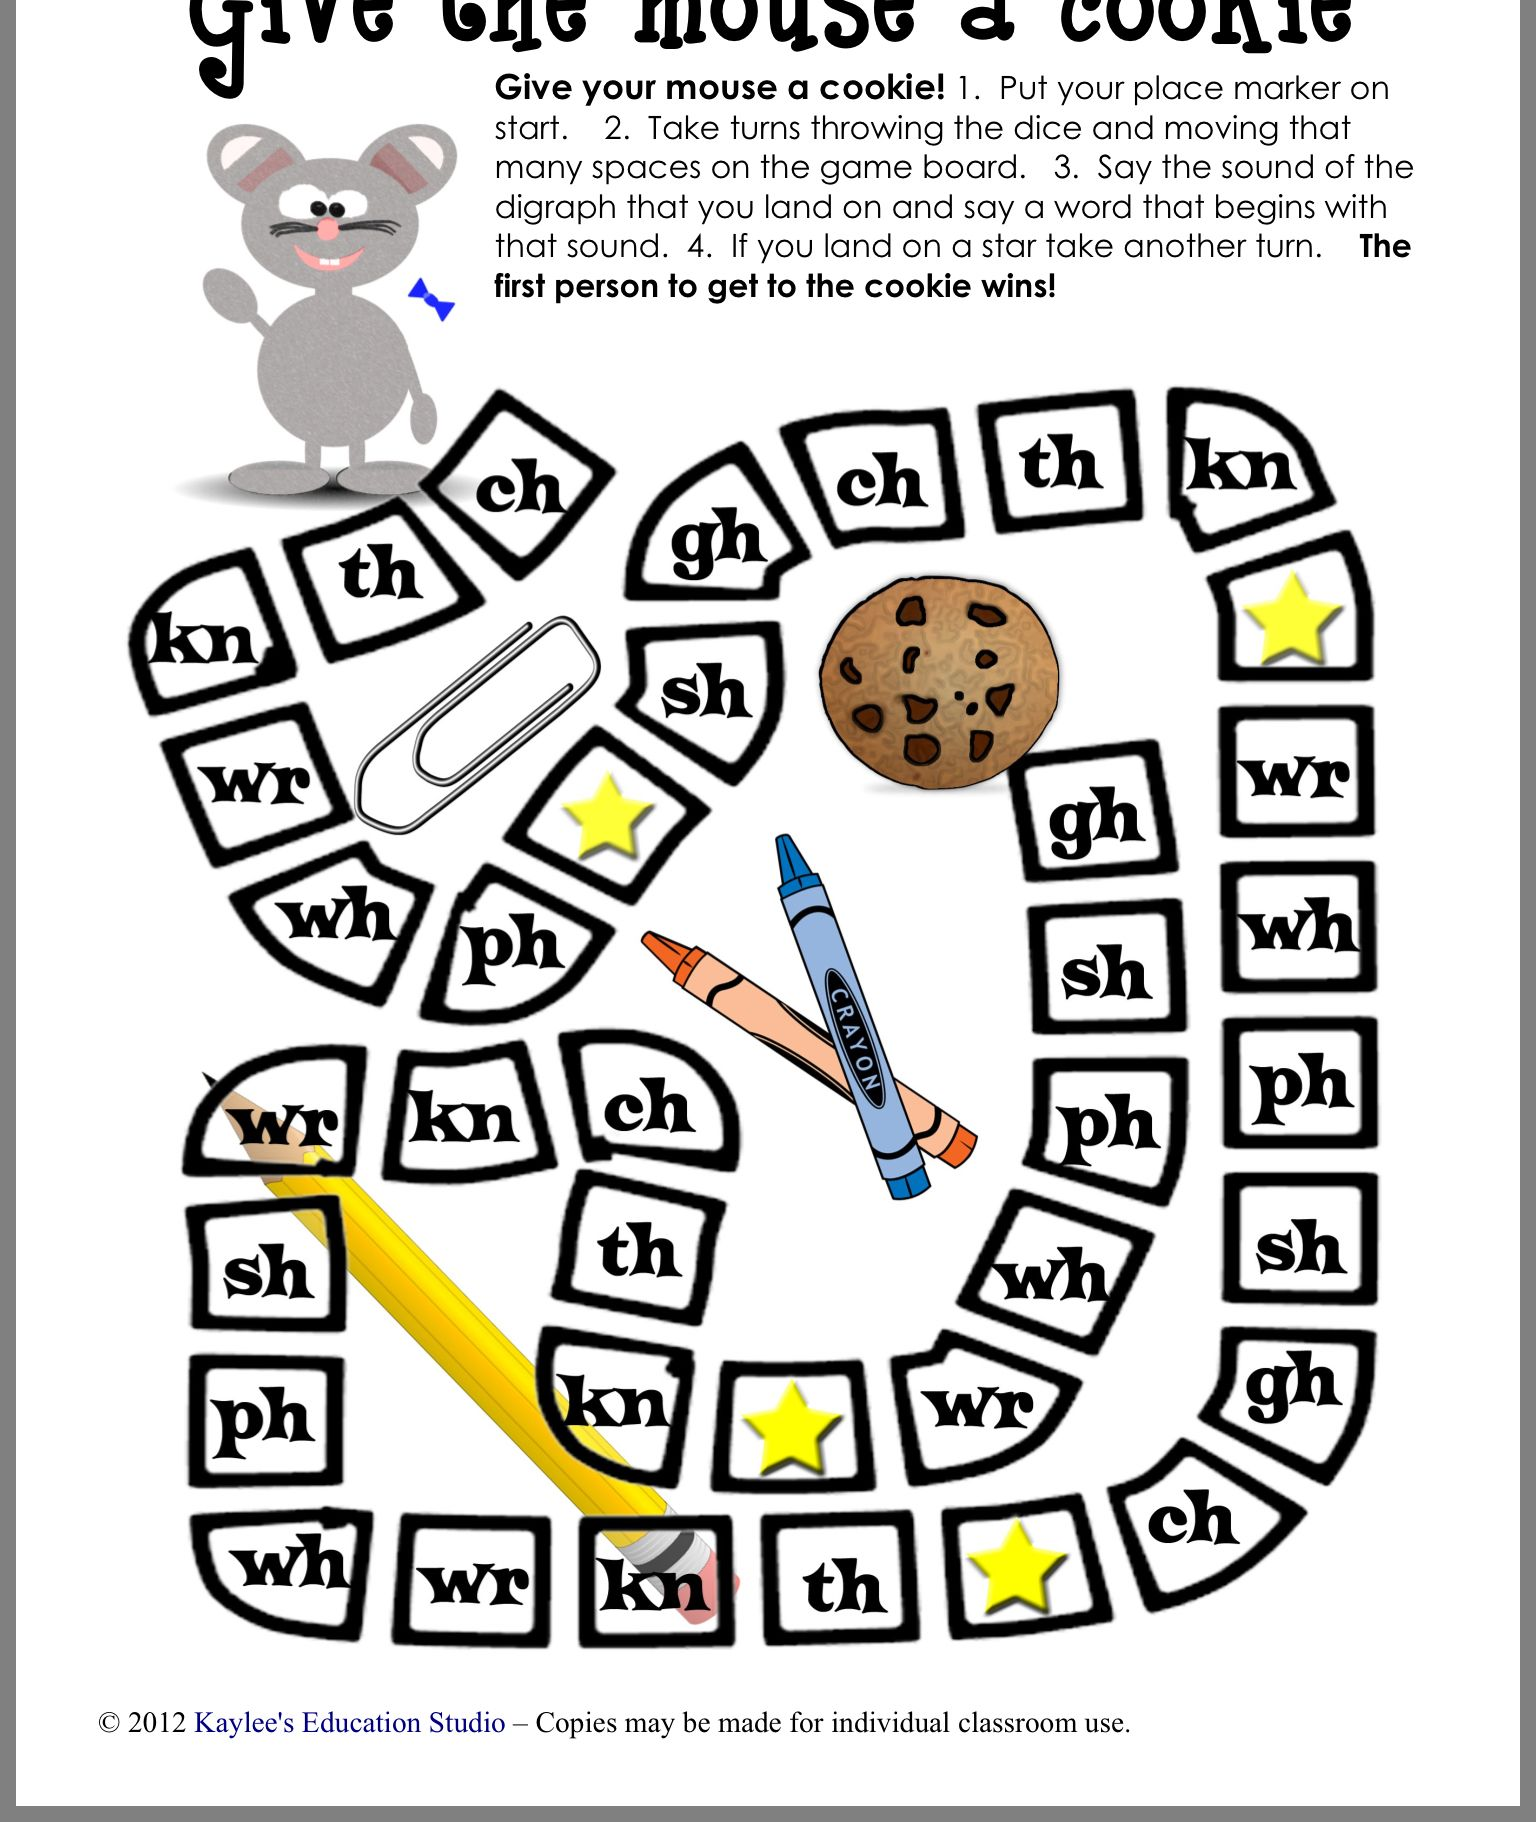 Pin by Suzanne Ratchford on Digraph board game First